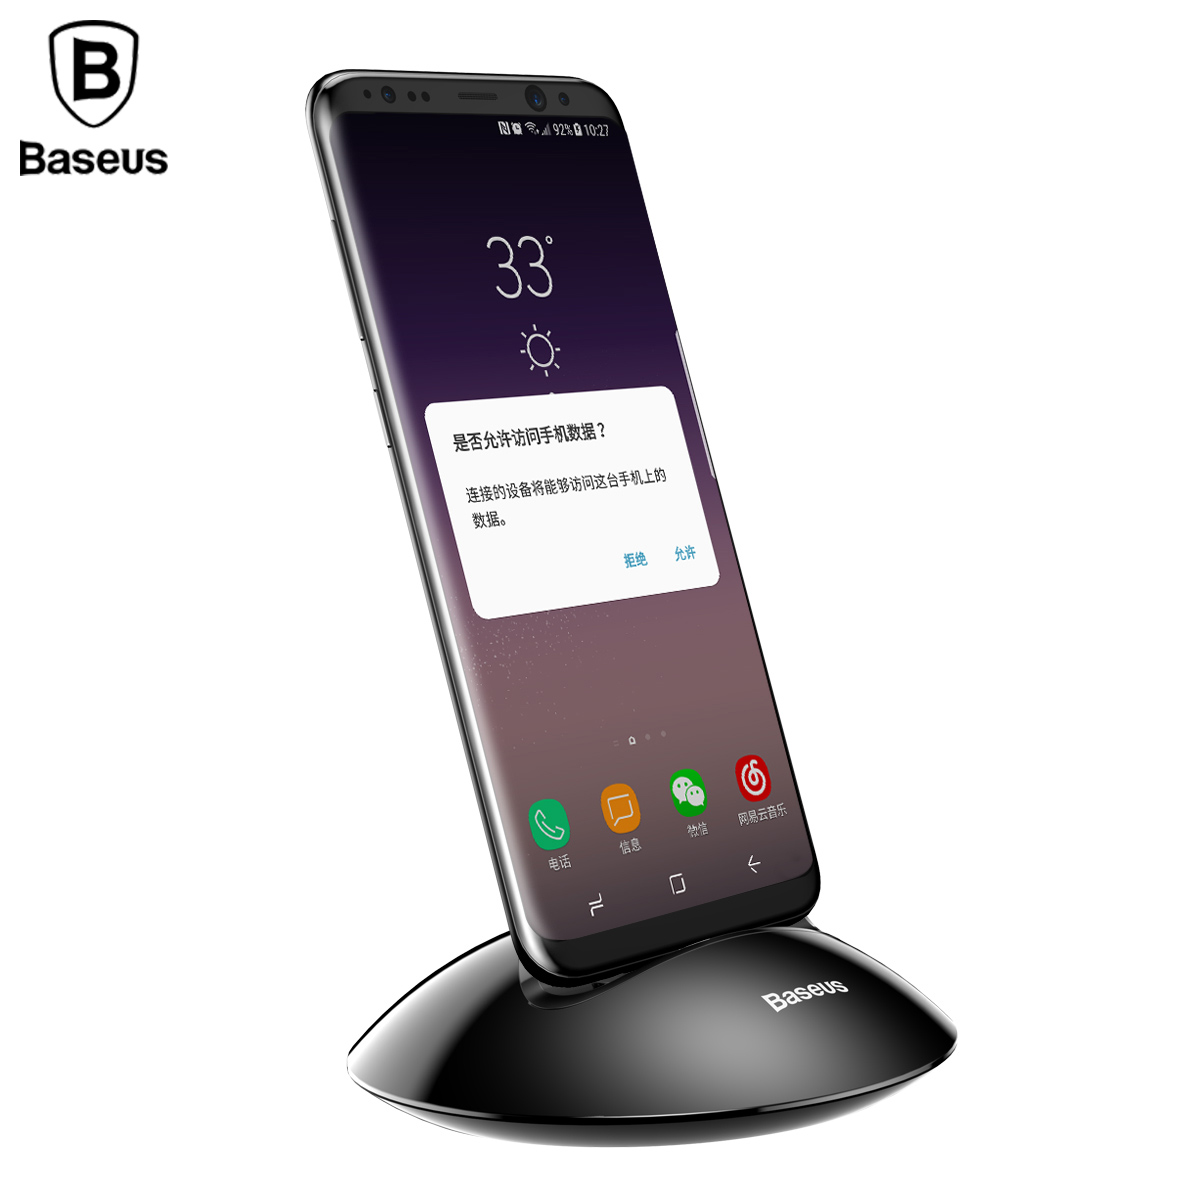 Baseus Desktop Phone Type C Charger For Samsung S8 S9 Note8 Xiaomi Mi5 Mi6 MiA1 Holder Stand USB-C Charger Charging Dock Station